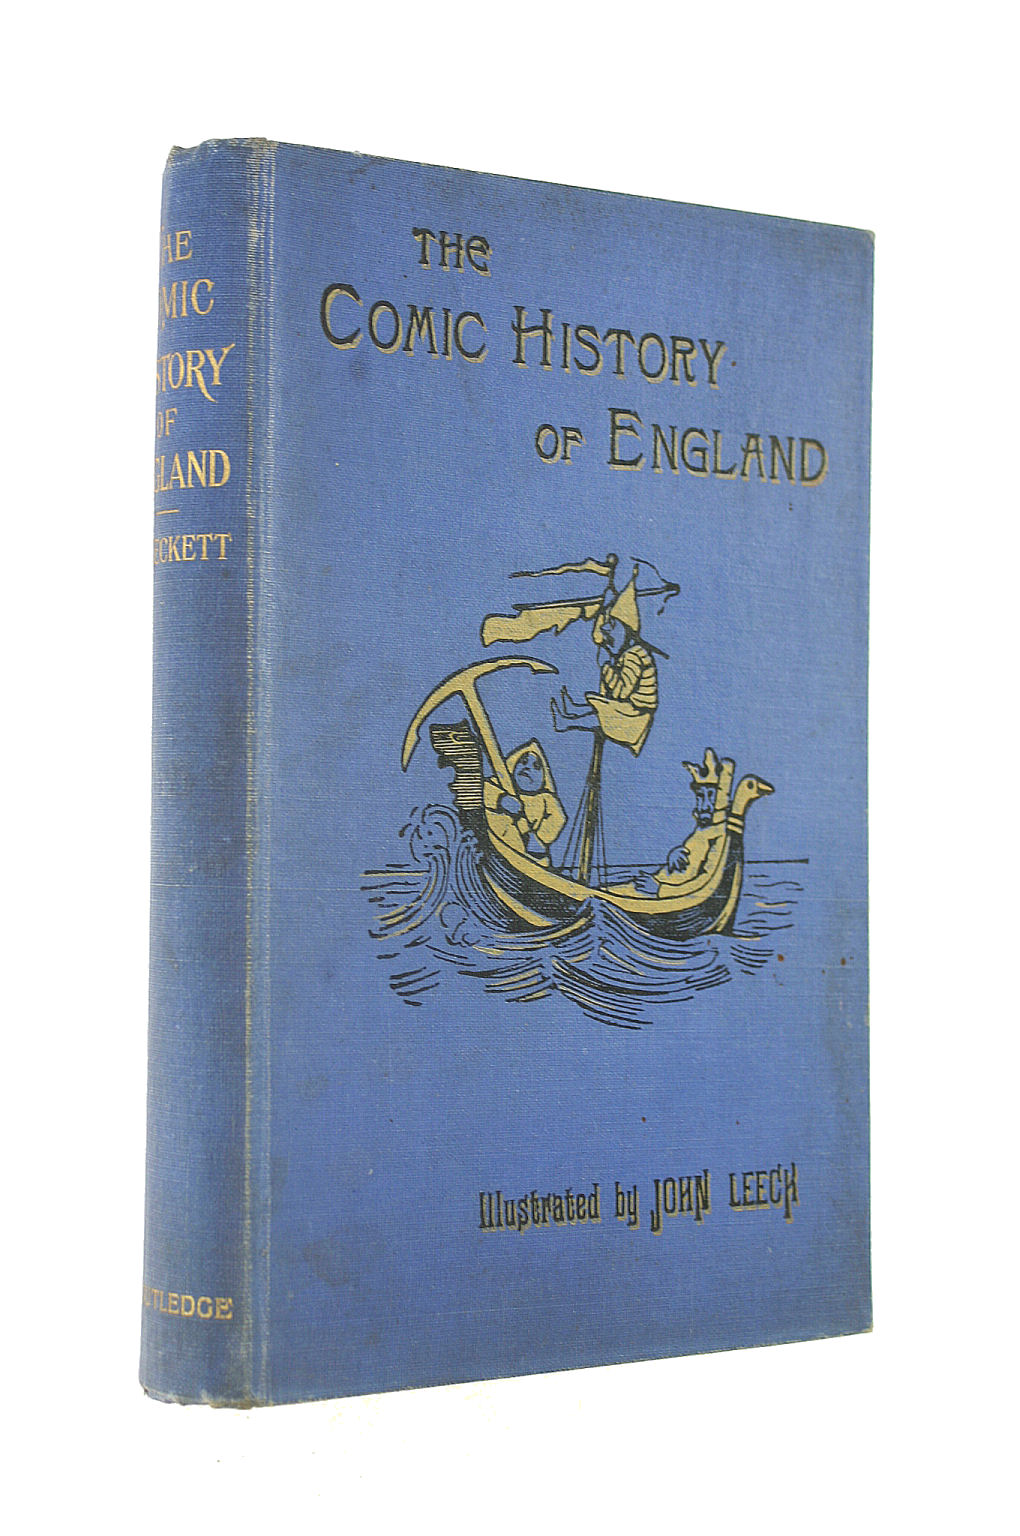 Image for The Comic History of England with reproductions of the 200 engravings by John Leech and twenty page illustrations